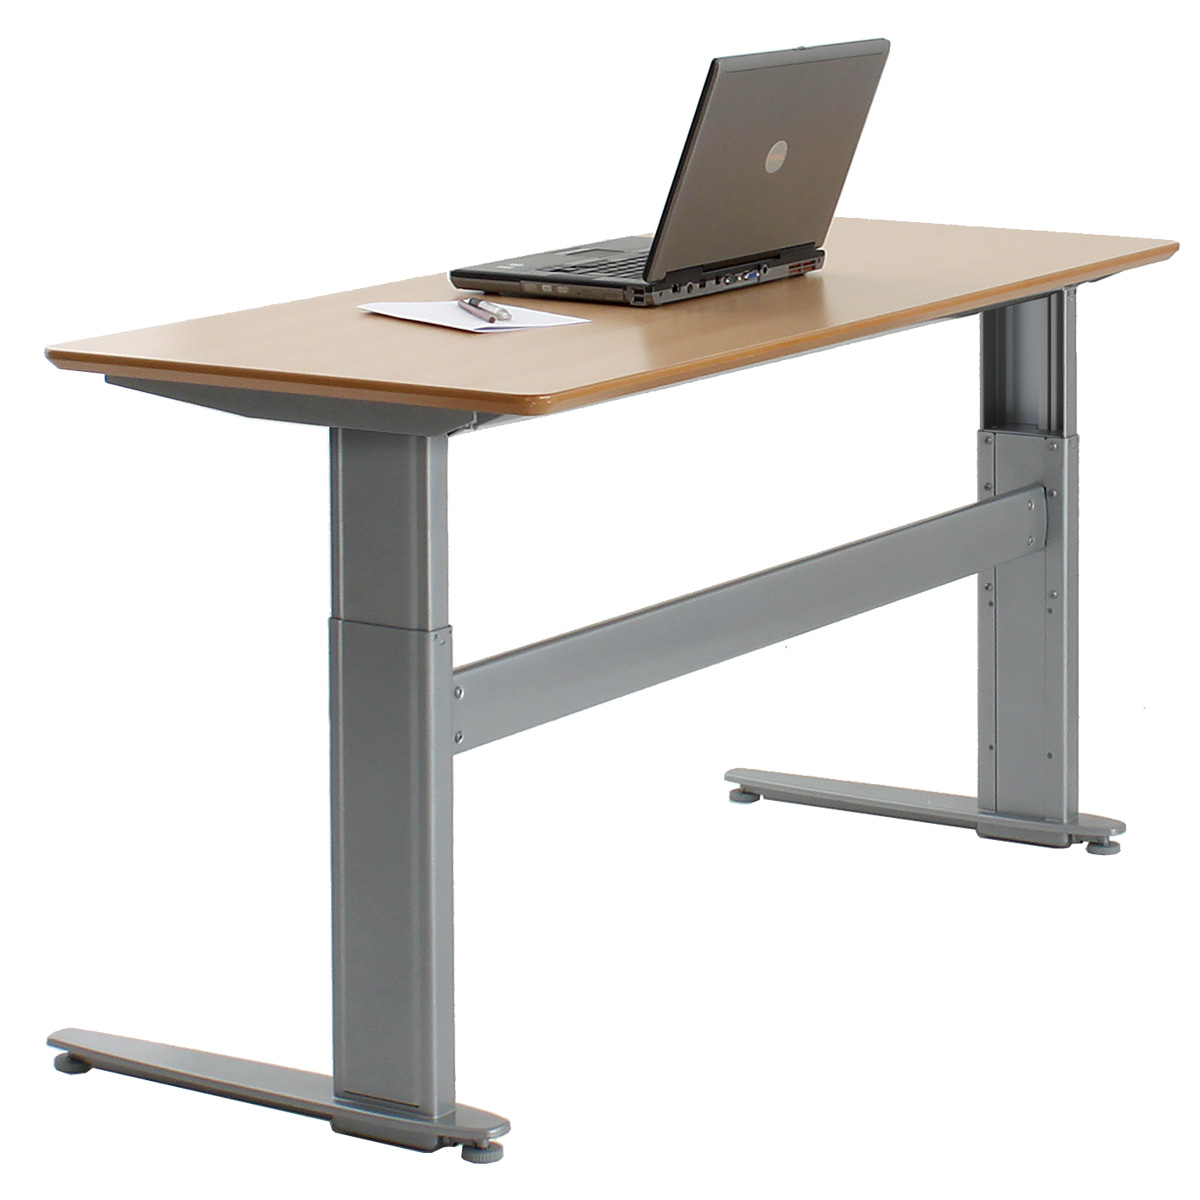 Shop conset 501 32 standing desks at the human solution for Chairs for standing desks